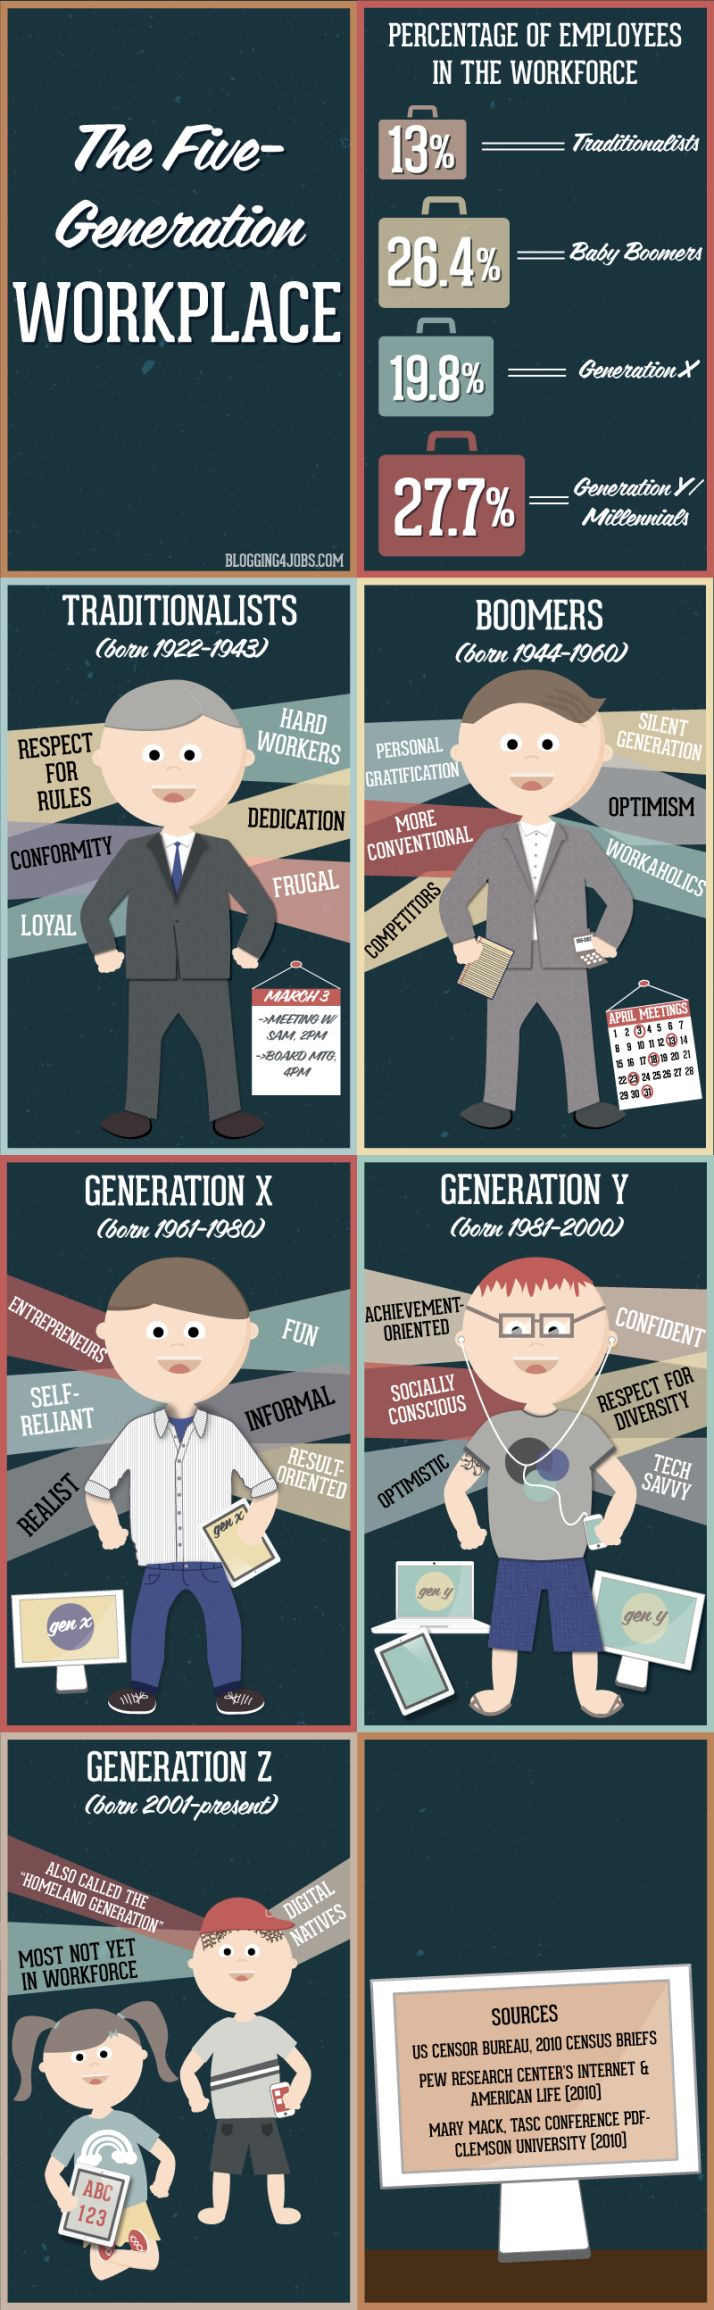 #Infographic: Five Generations in the Workplace.